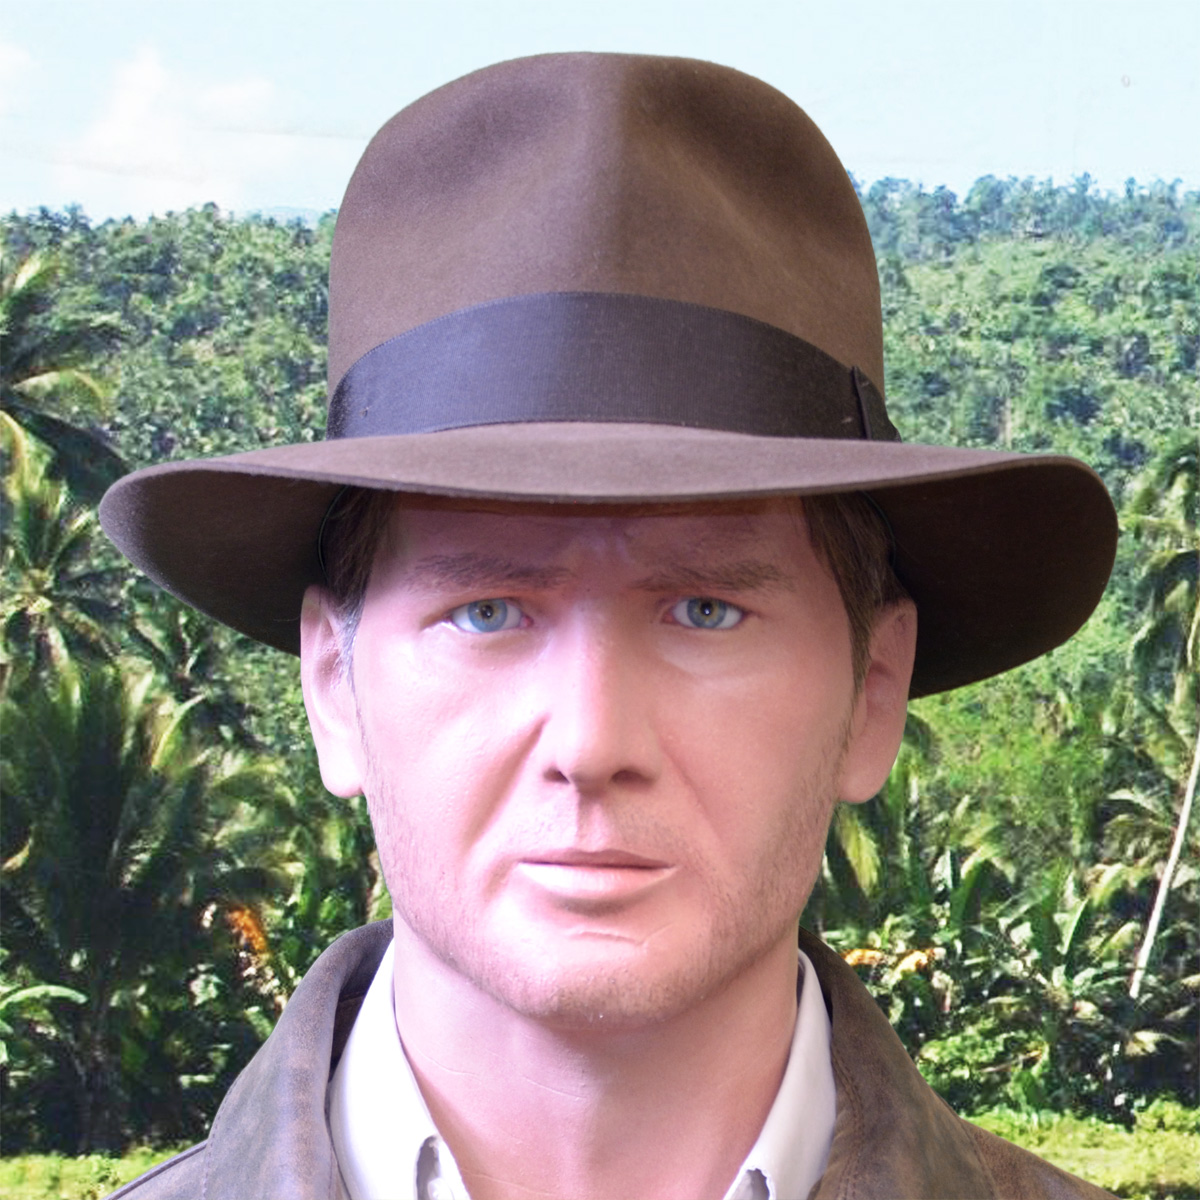 987ee888df3 Authentic Indiana Jones Hat - MAX CADY